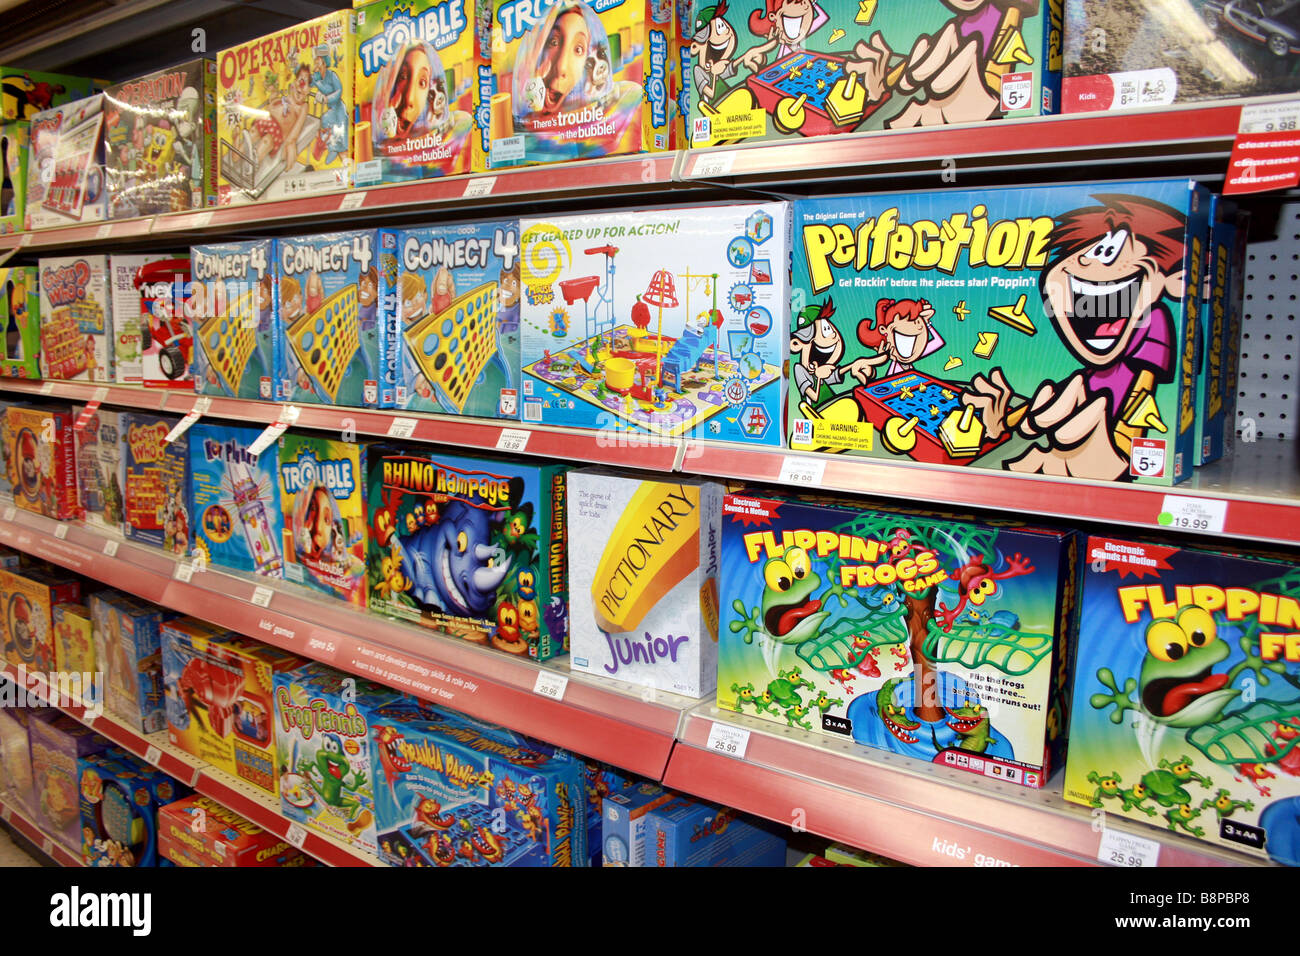 board games on shelf in toy store, united states Stock Photo